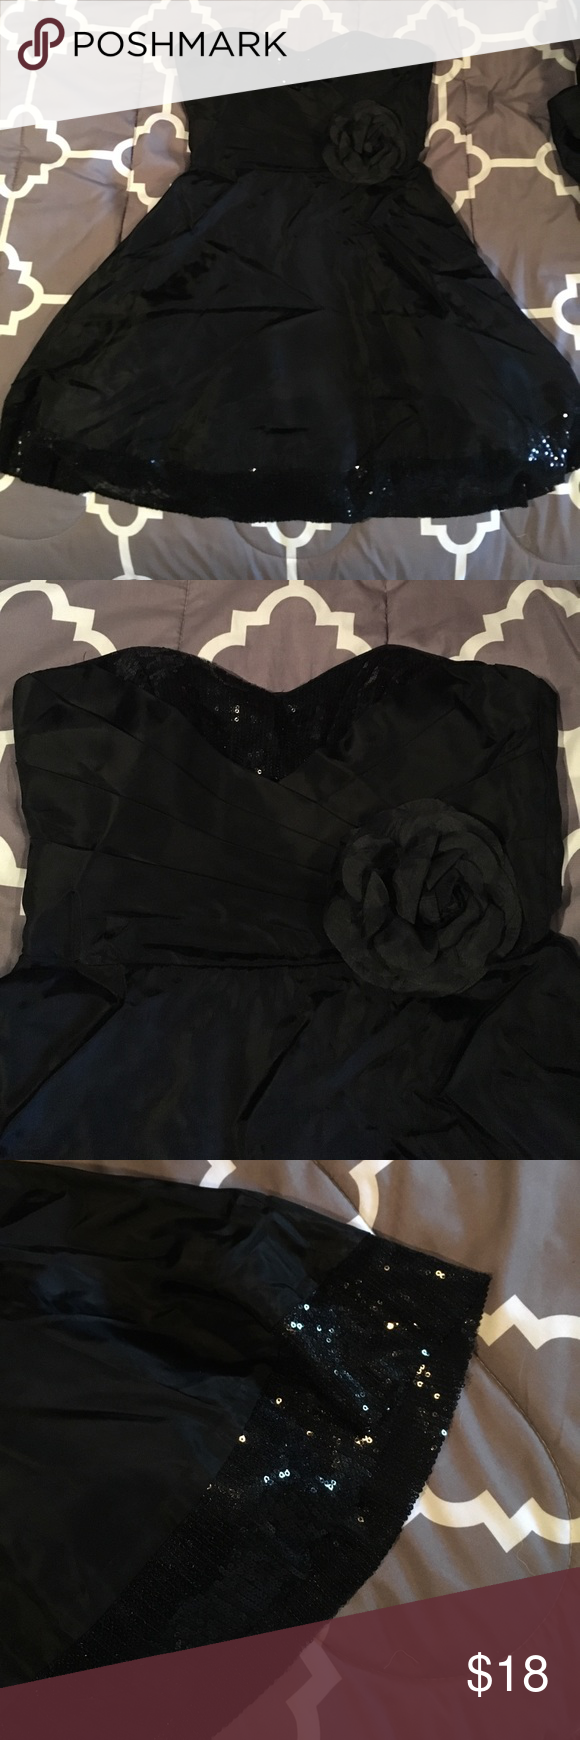 Short black dress Beautiful strapless black dress adorned with sequins at the top & at the dress's bottom. Like new - worn once to a homecoming dance. Perfect condition (it's just a little wrinkled). Purchased from Windsor. Windsor Dresses Strapless